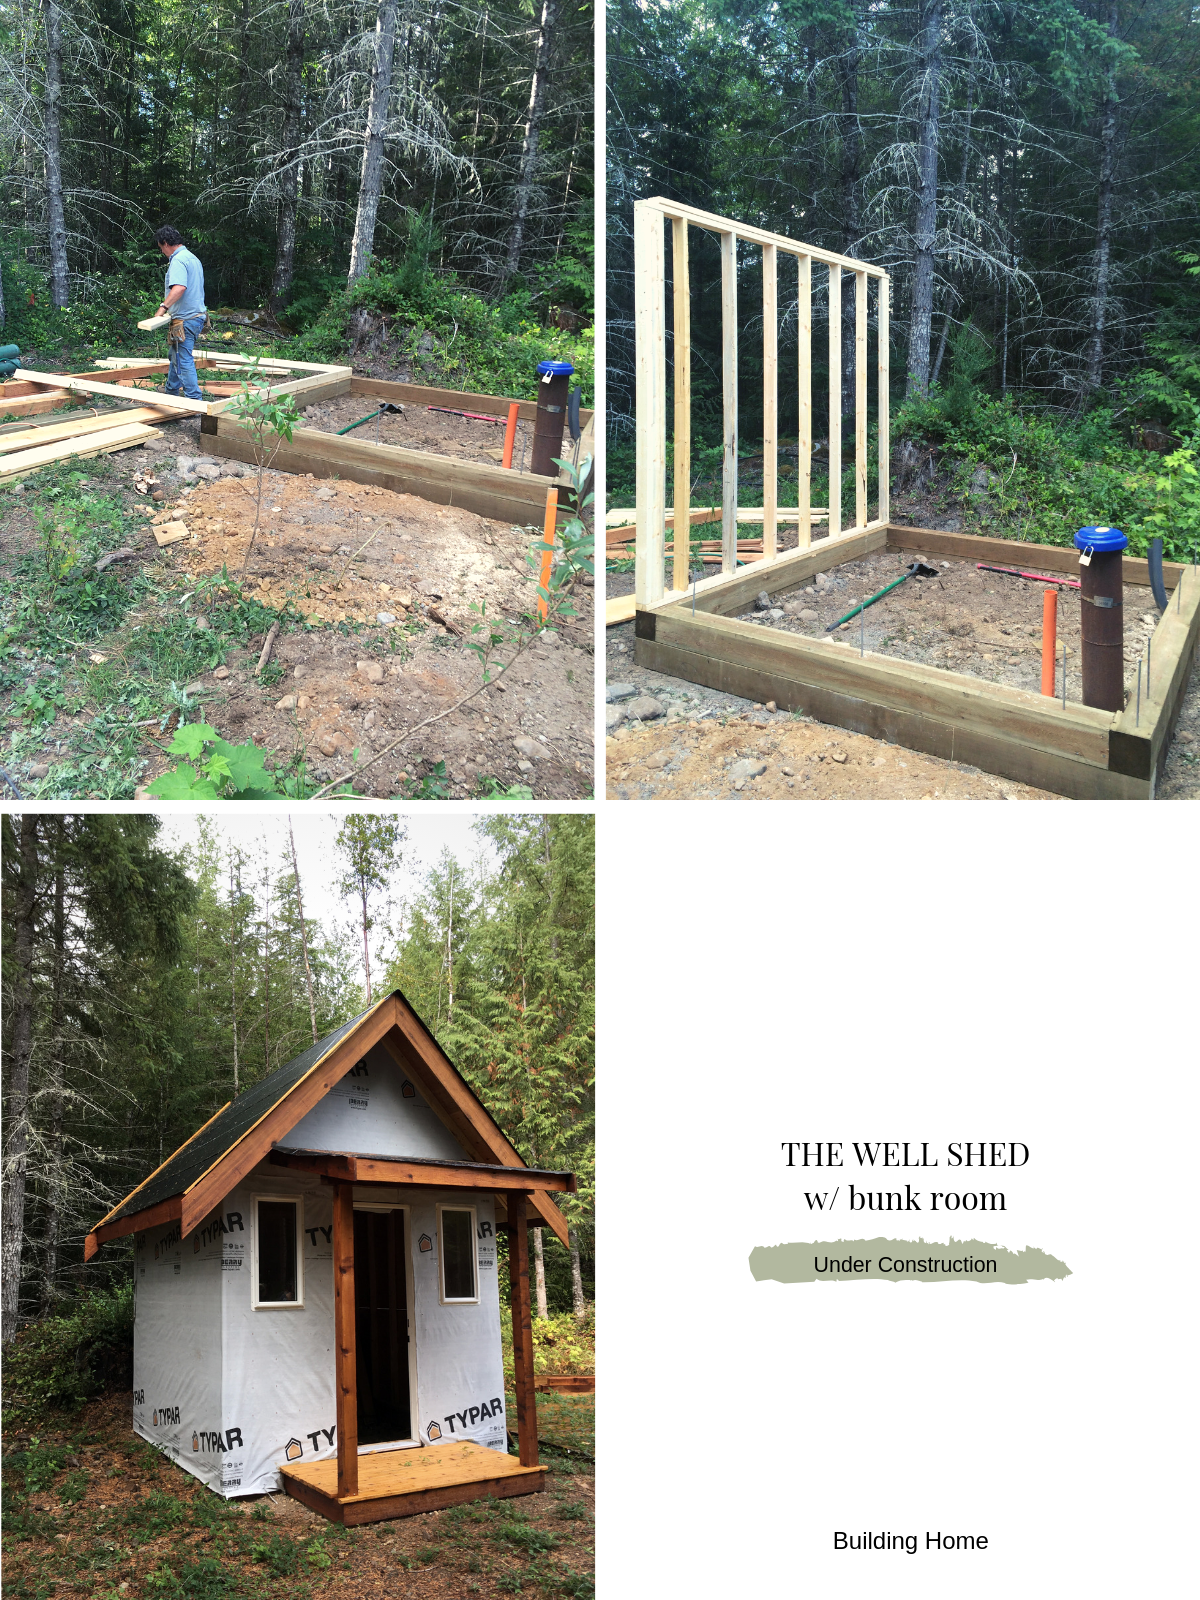 building-home-well-shed-construction.png